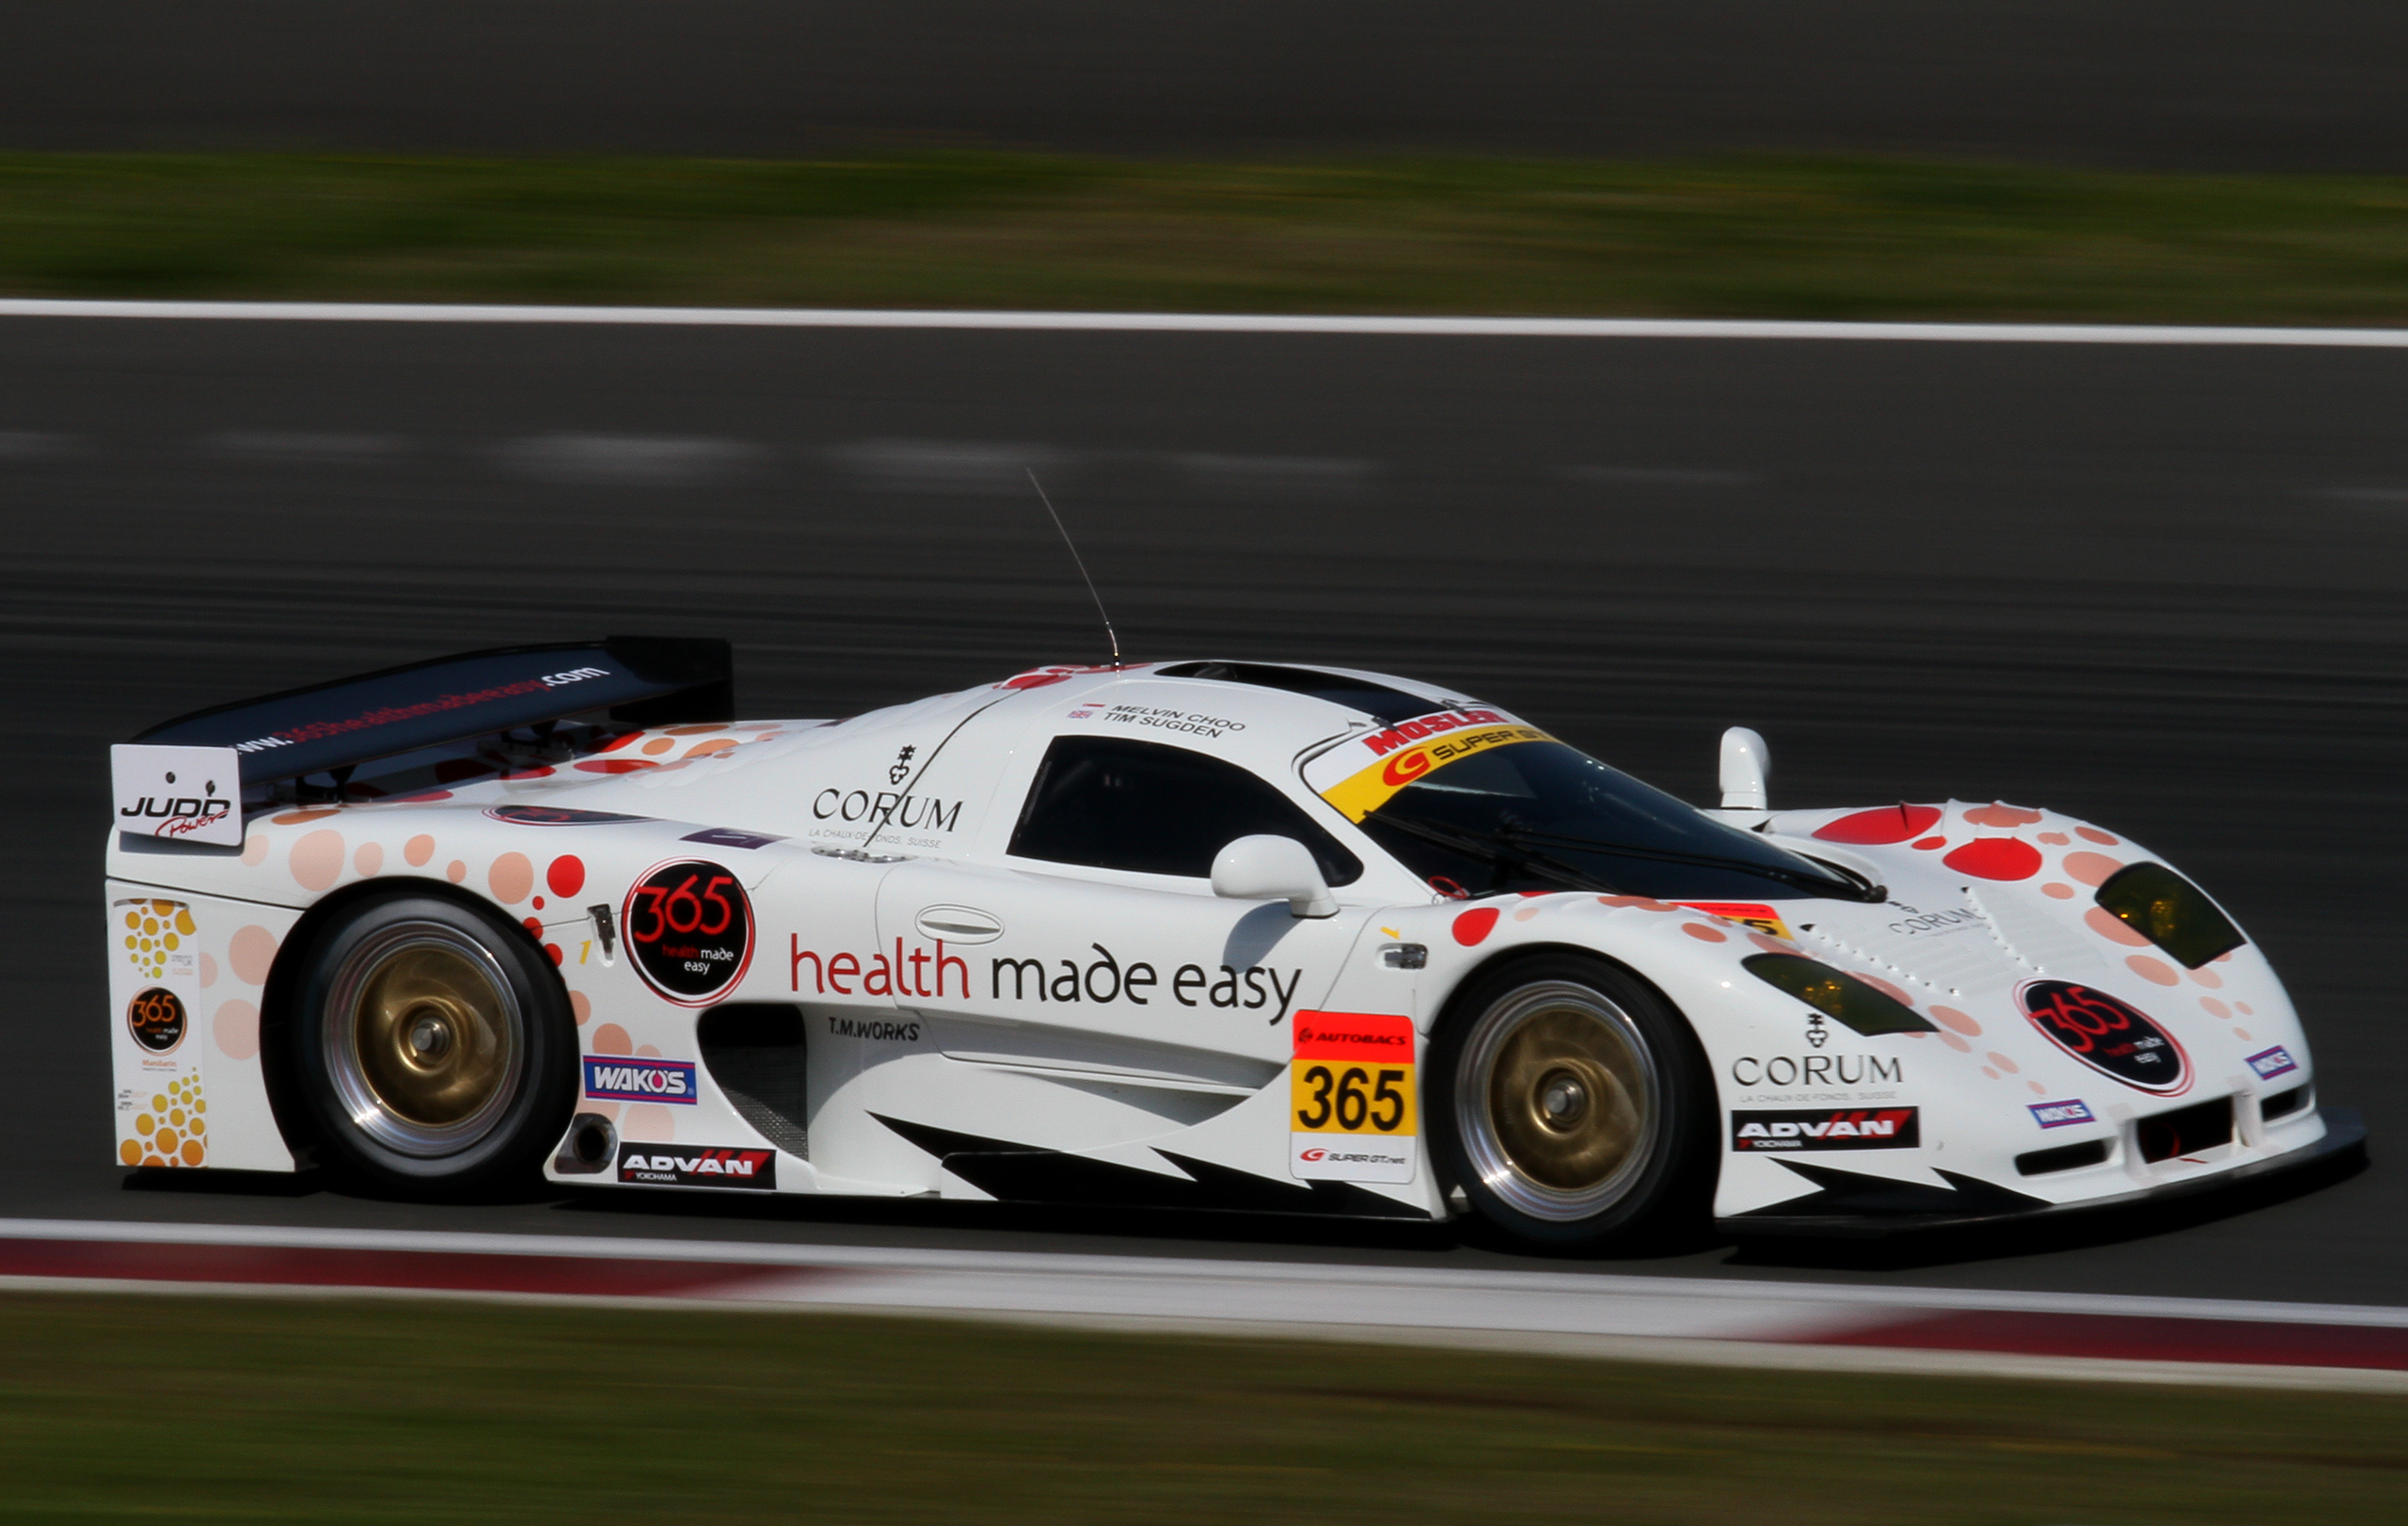 Corvette For Sale >> File:Melvin Choo 2010 Super GT Fuji 400km qualify.jpg ...